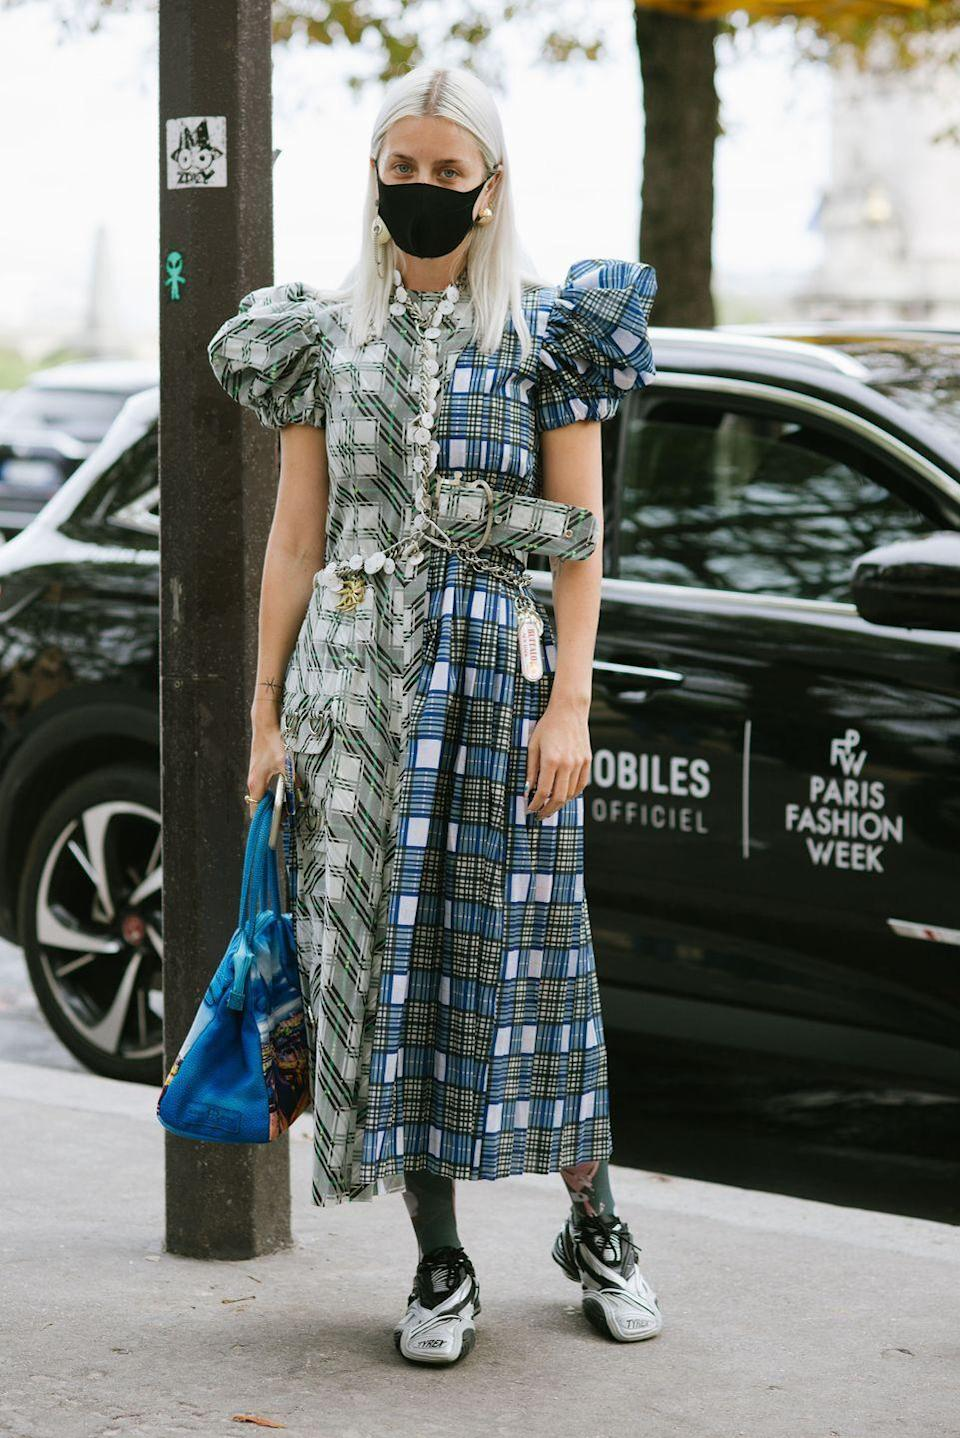 """<p>Our <a href=""""https://www.cosmopolitan.com/uk/fashion/style/g29031614/best-black-dress/"""" rel=""""nofollow noopener"""" target=""""_blank"""" data-ylk=""""slk:autumnal dresses"""" class=""""link rapid-noclick-resp"""">autumnal dresses</a> didn't get many chances to make an outing last year, so rework them for the coming warmer months. A tartan <a href=""""https://www.cosmopolitan.com/uk/fashion/style/a27403223/maxi-dresses-uk/"""" rel=""""nofollow noopener"""" target=""""_blank"""" data-ylk=""""slk:maxi dress"""" class=""""link rapid-noclick-resp"""">maxi dress</a> paired with layers of colourful beaded jewellery and chains, plus a bright patterned bag feels just as right for spring. </p>"""